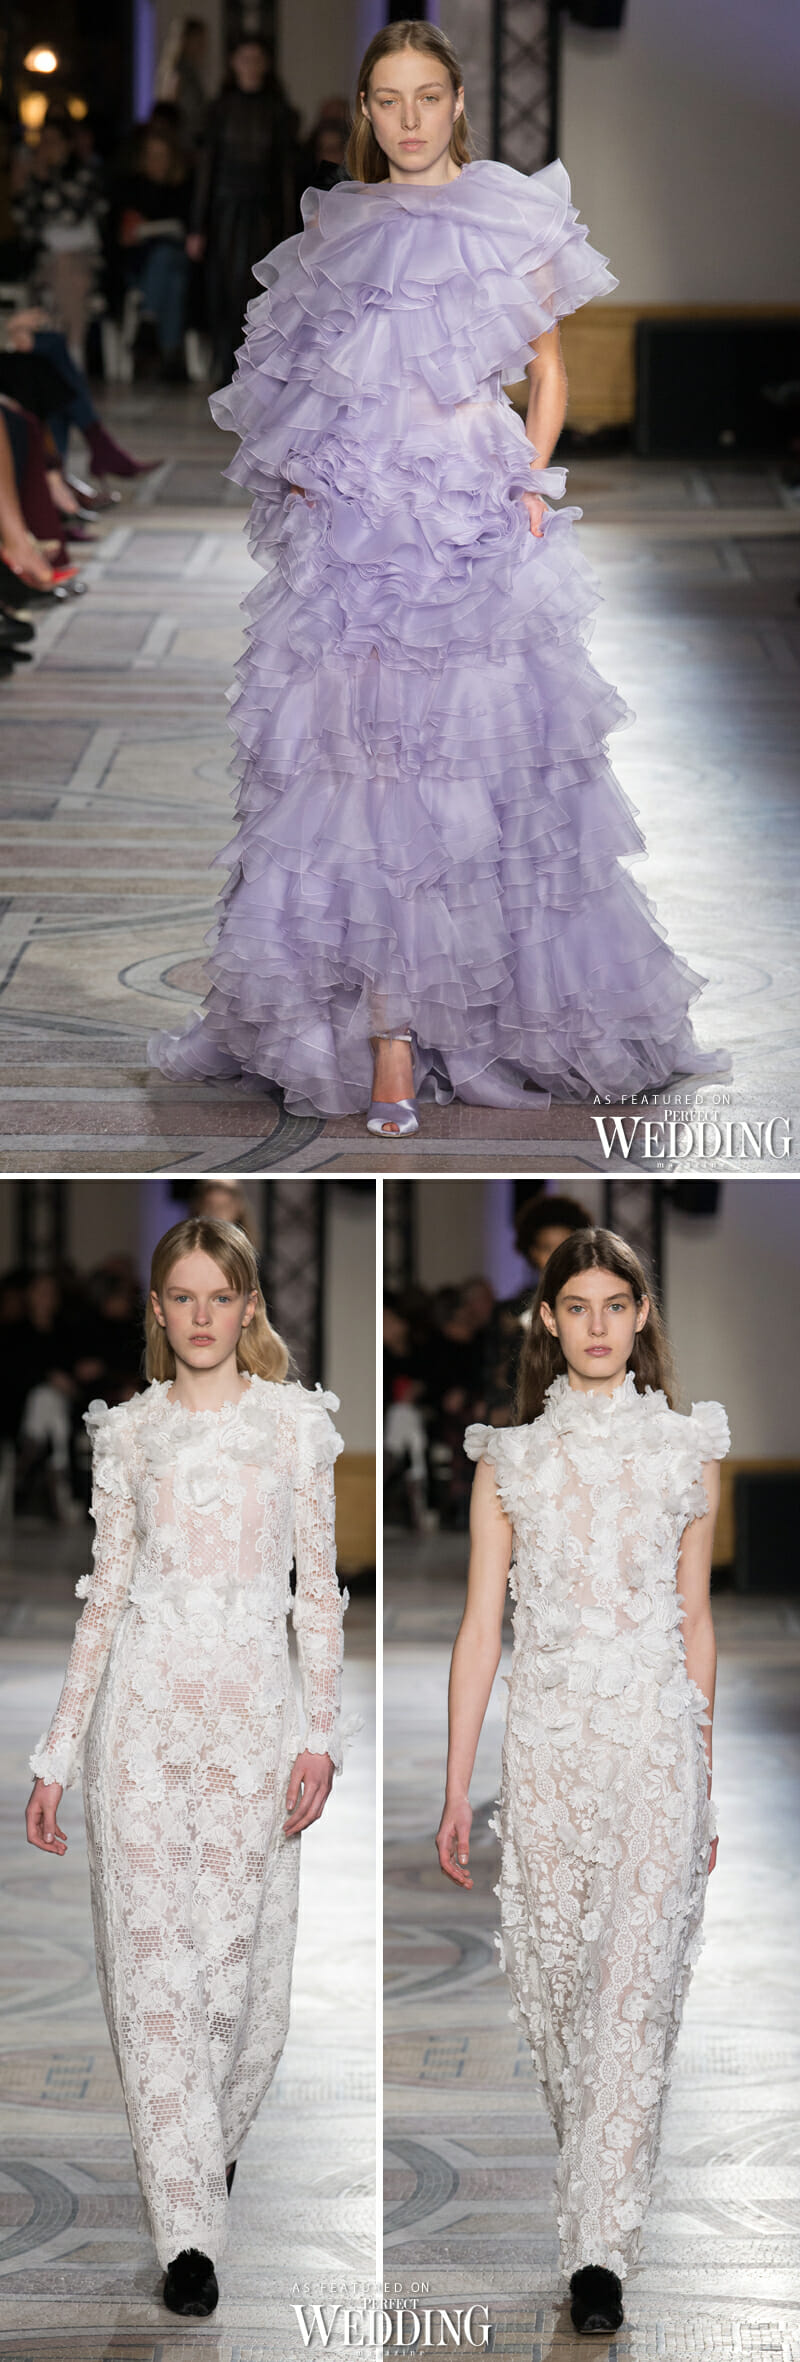 Giambattista Valli, Giambattista Valli Haute Couture, Spring 2018, Giambattista Valli, Spring 2018 Haute Couture, Bridal Gowns, Paris Fashion Week, Perfect Wedding Magazine, Perfect Wedding Blog,